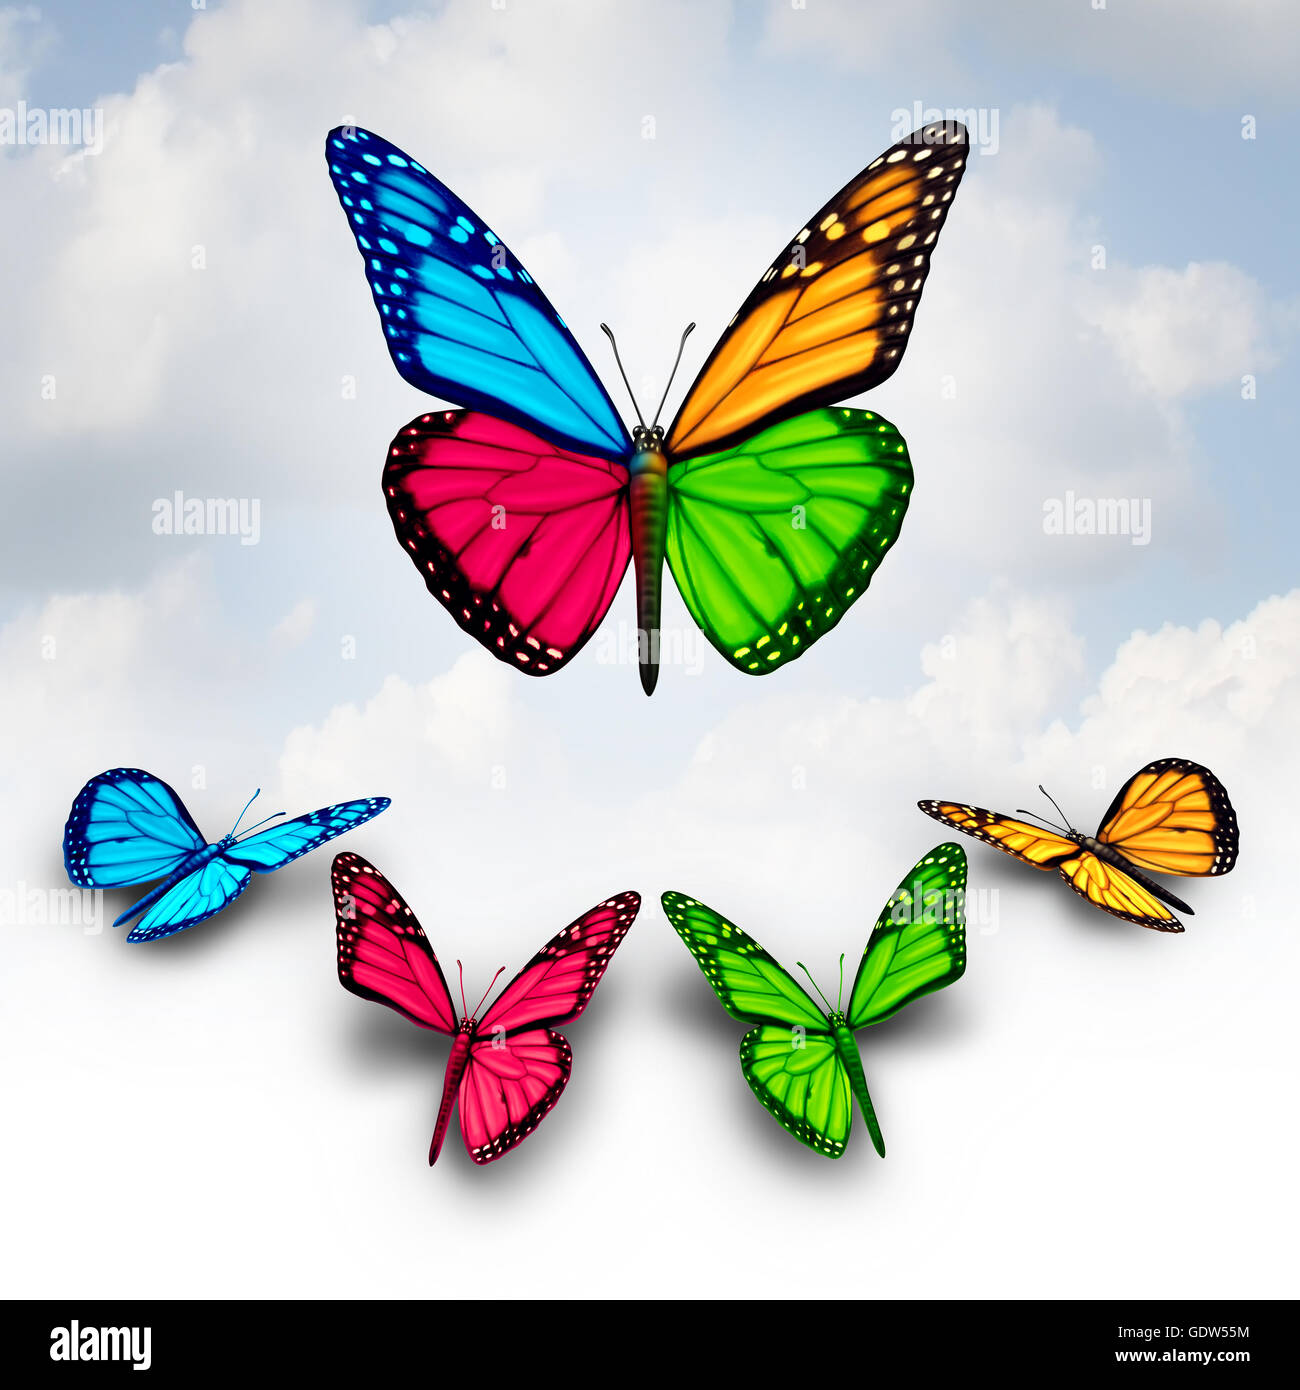 Collaboration business concept of success as a team of diverse butterflies collaborating together by donating or - Stock Image